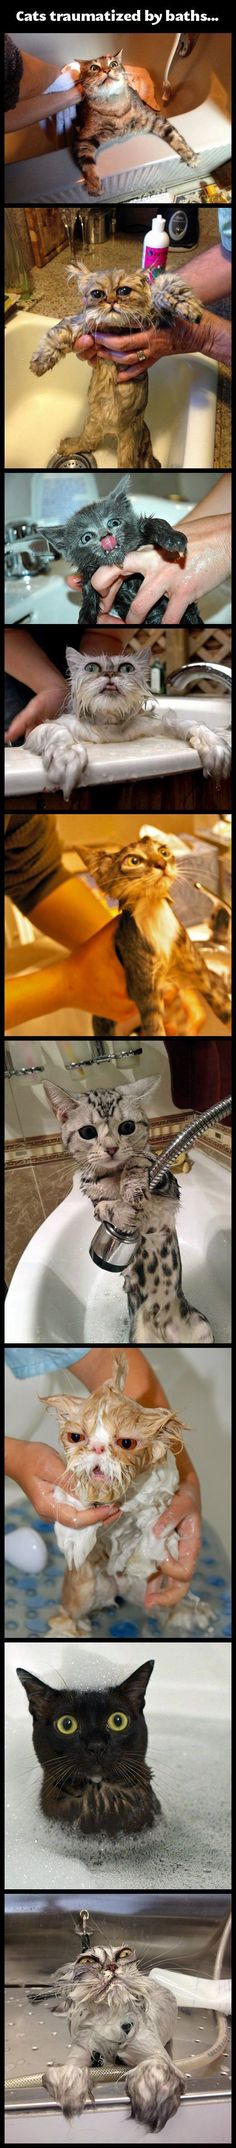 Cats Traumatized By Baths cute animals cat cats adorable animal kittens pets lol kitten humor funny pictures funny animals funny cats